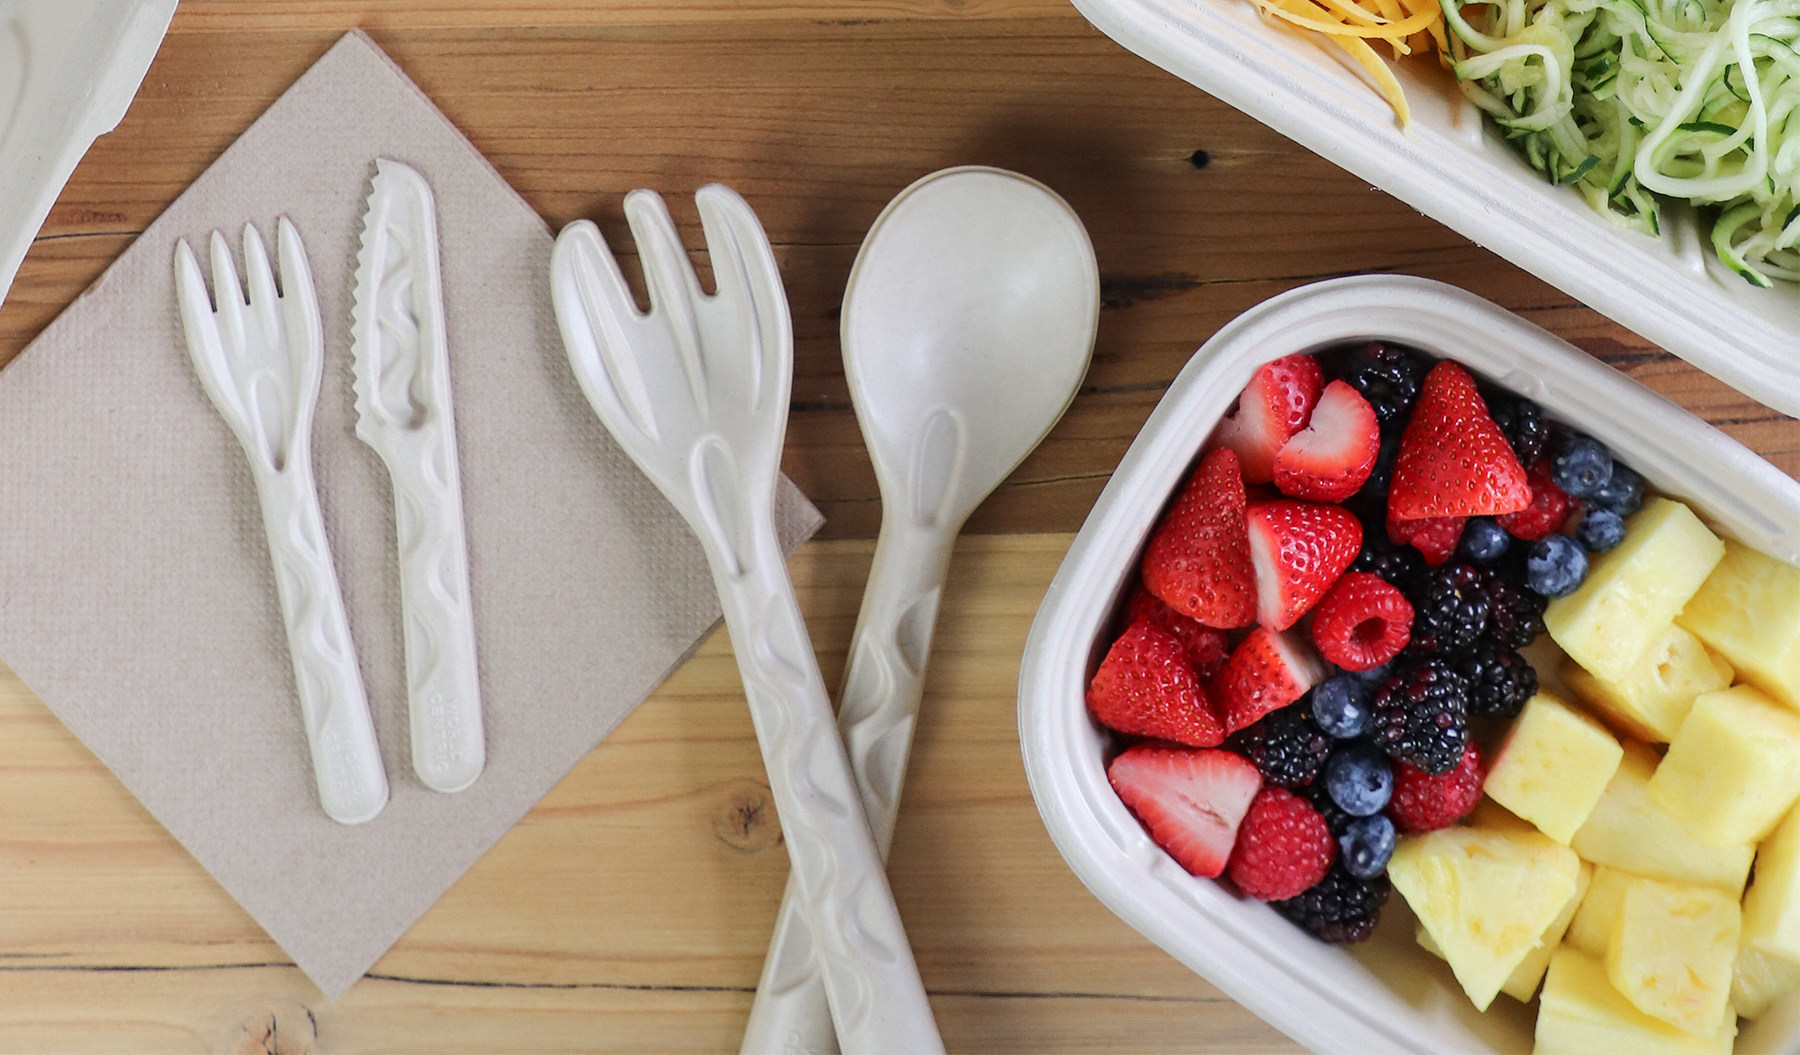 Compostable Molded Fiber Cutlery